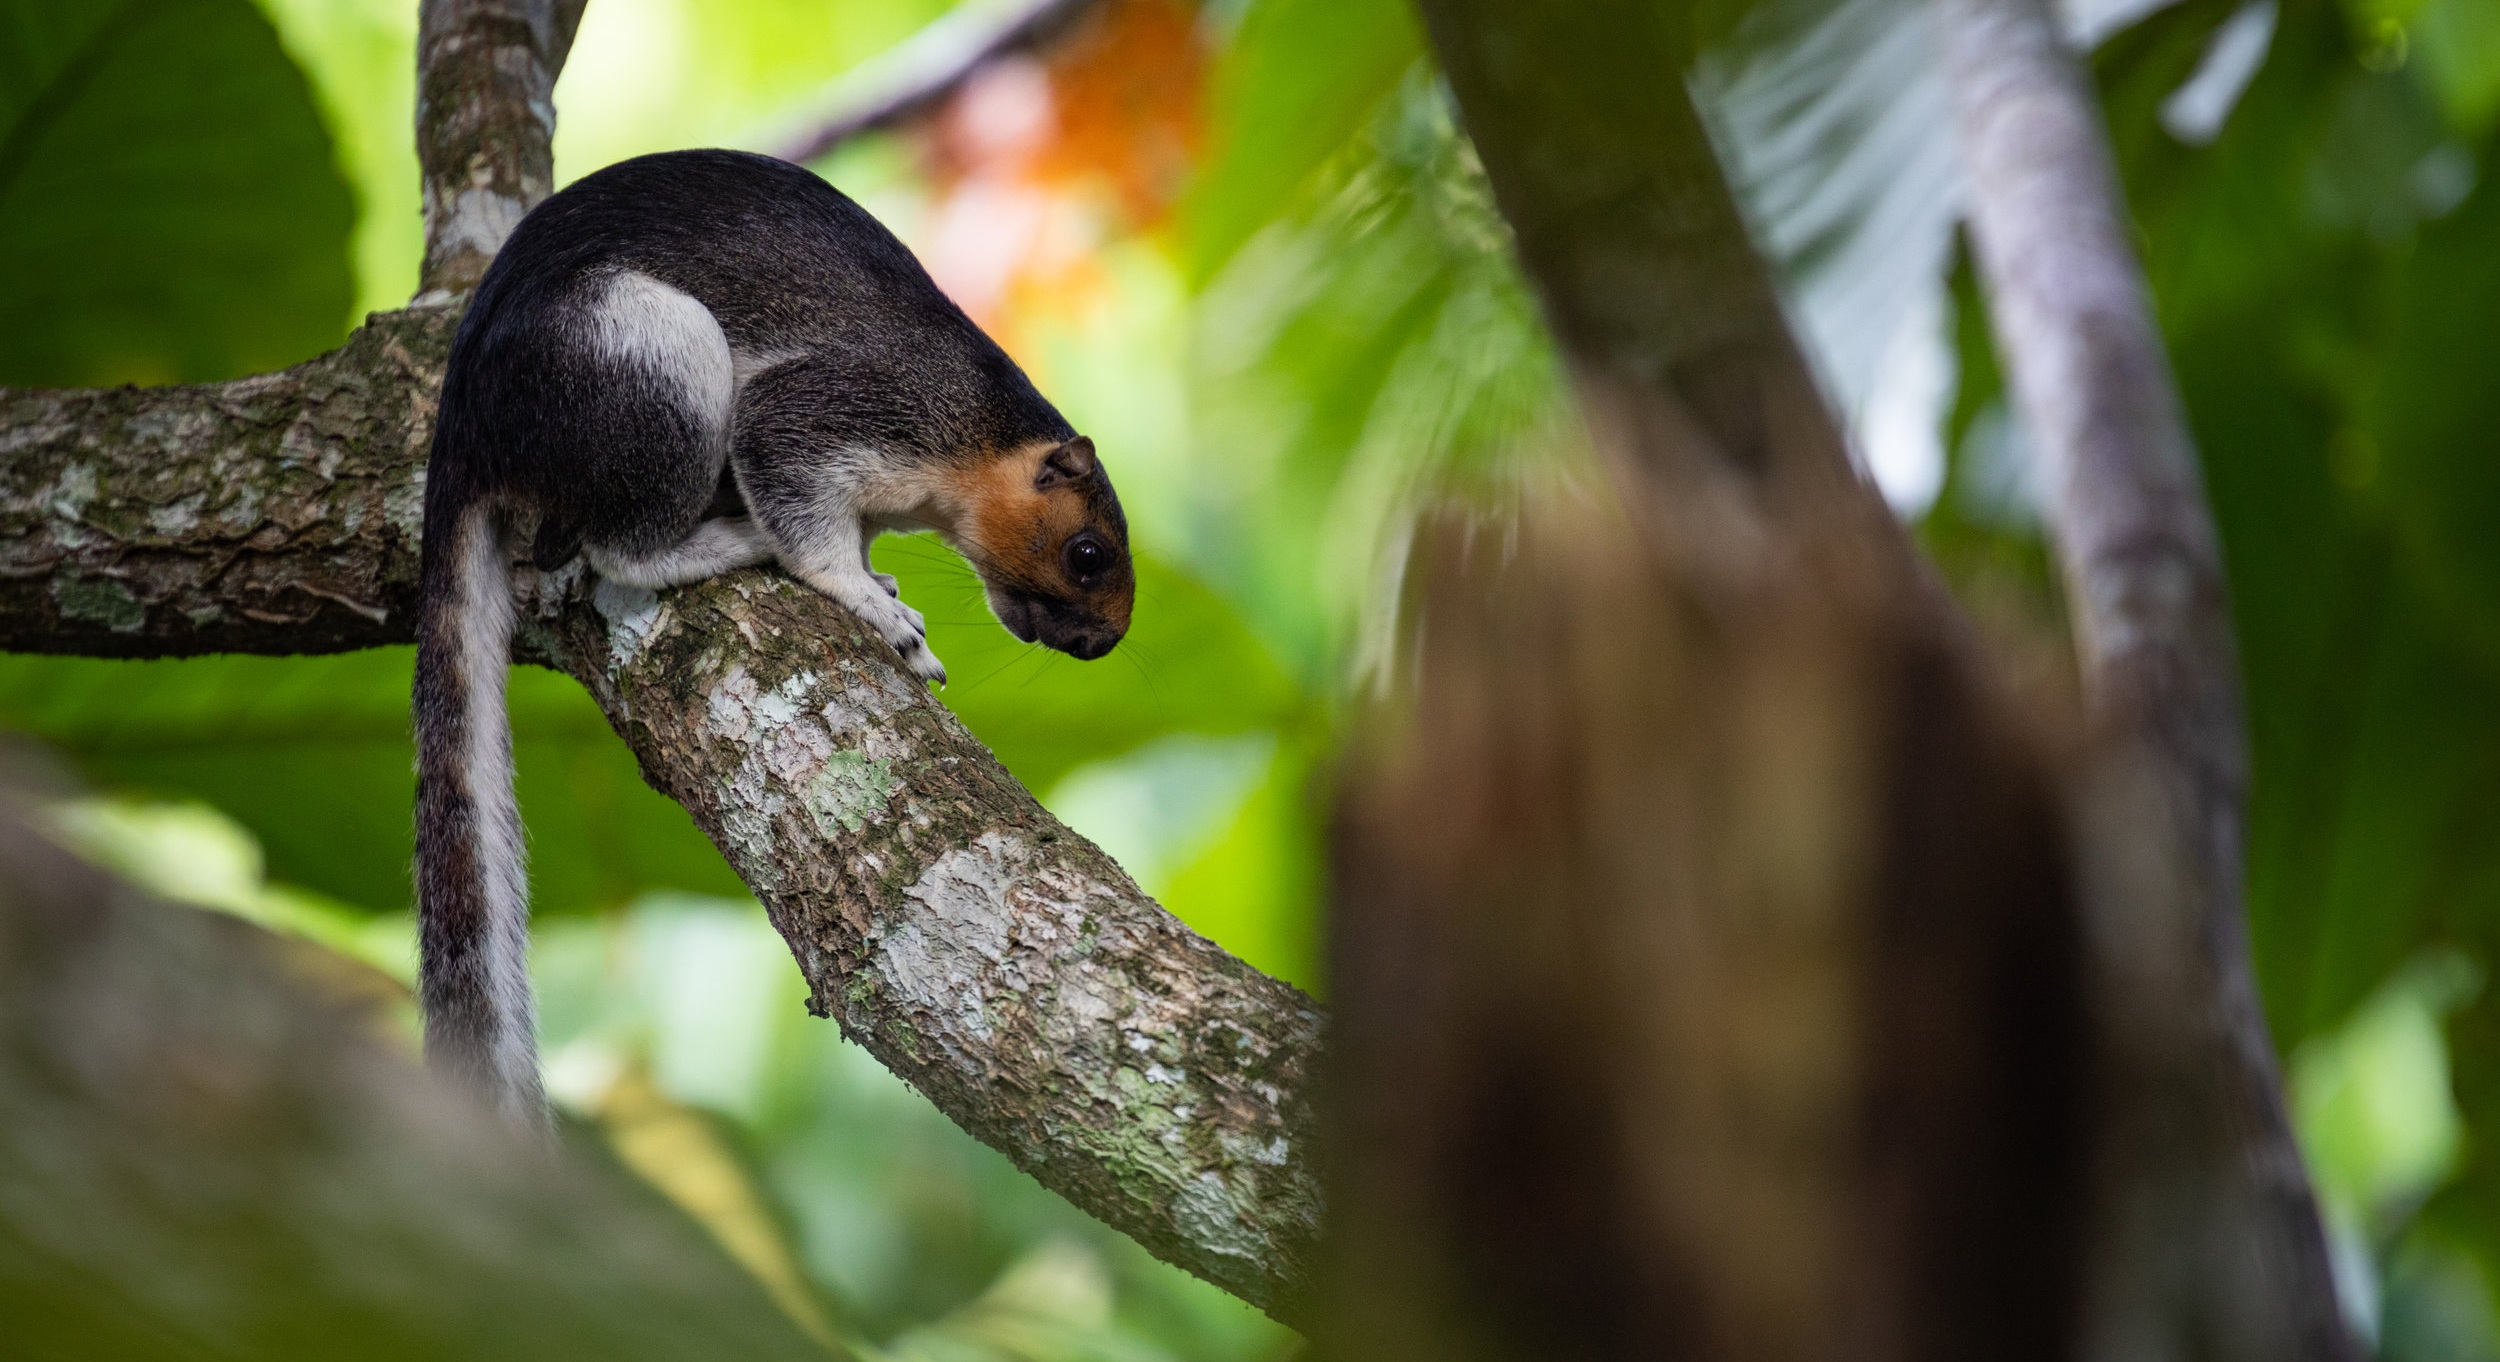 Cream-coloured giant squirrel or pale giant squirrel (Ratufa affinis) on a tree branch in Borneo, Sepilok, Malaysia.